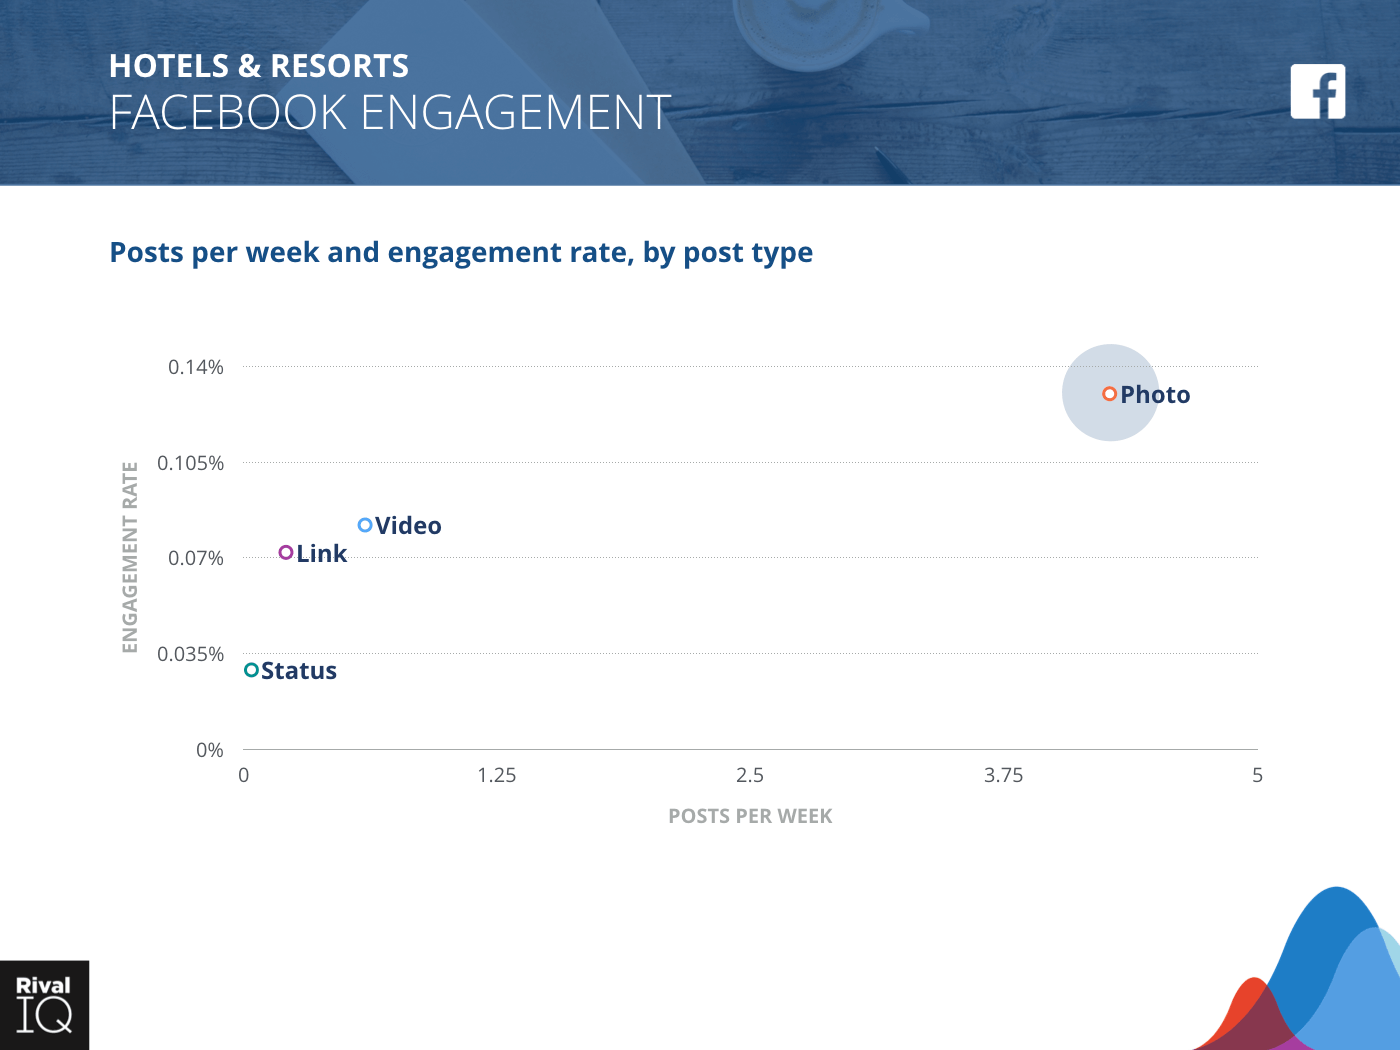 Hotels & Resorts Industry: scatter graph, average post per week by type and engagement rate on Facebook